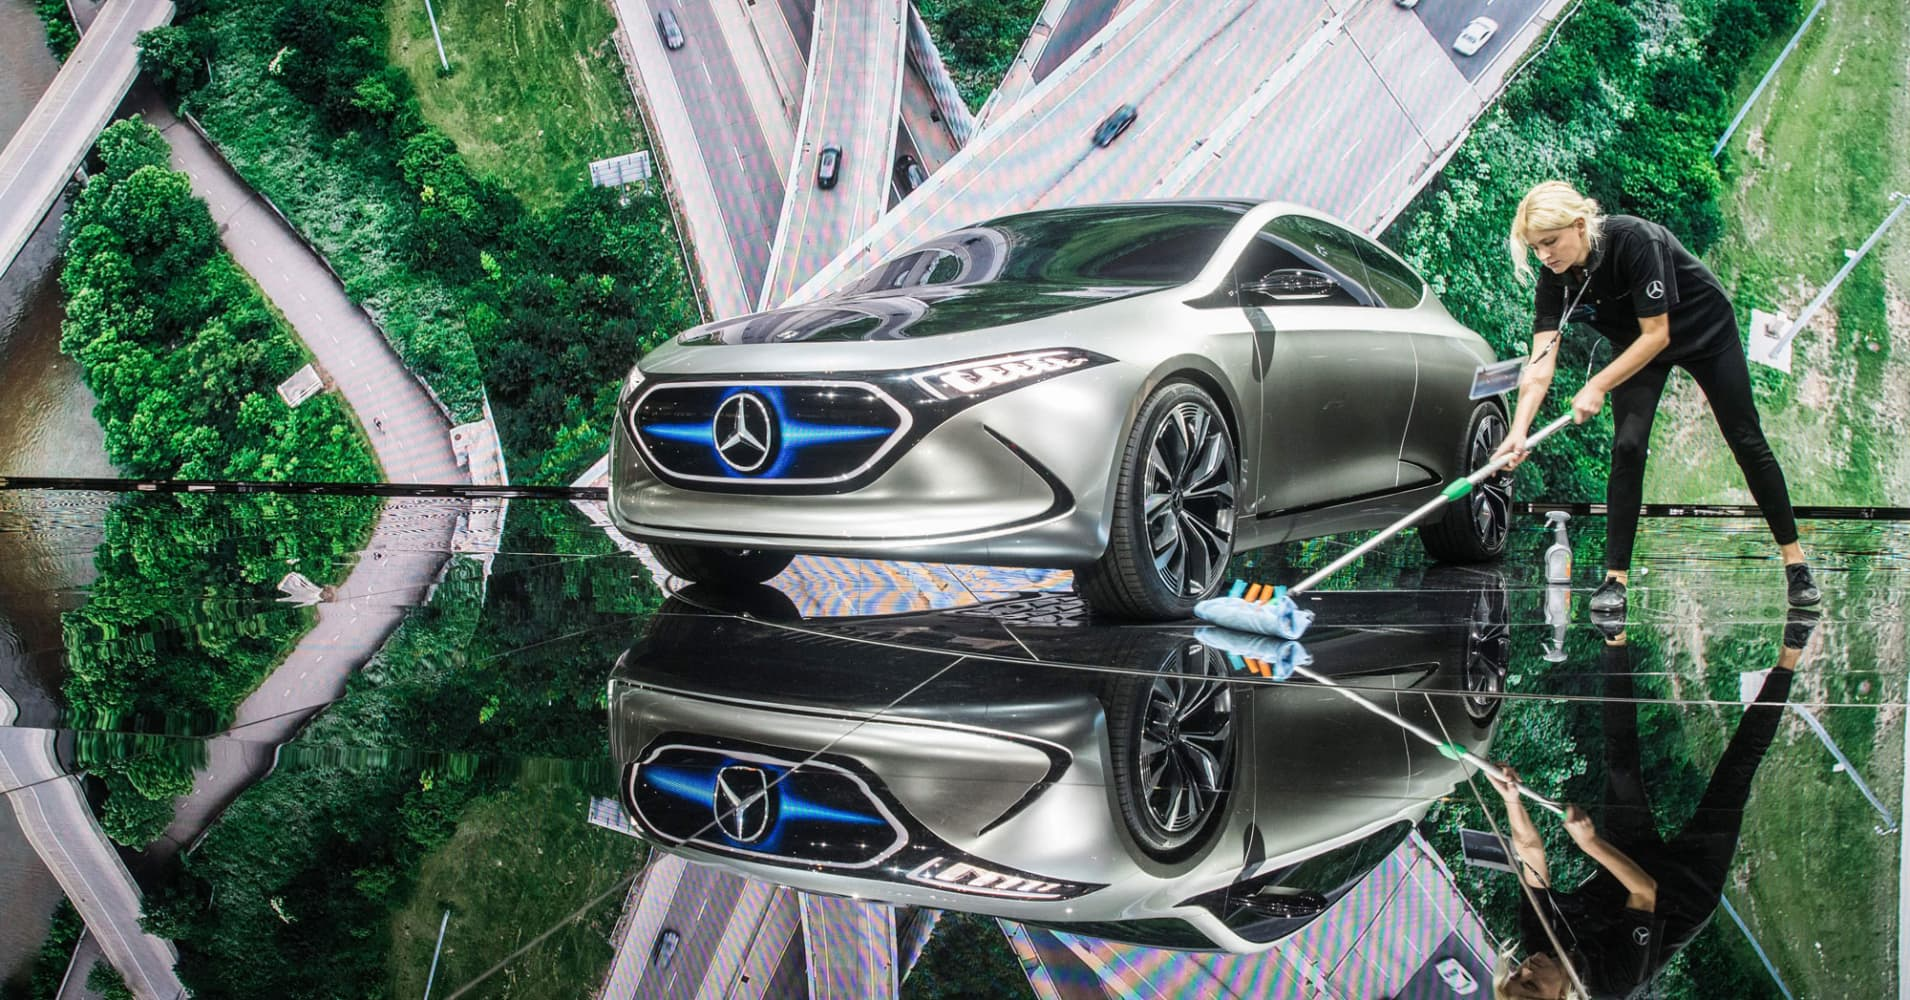 Up to 25 percent of cars may soon be fully electric, says Mercedes-Benz USA CEO